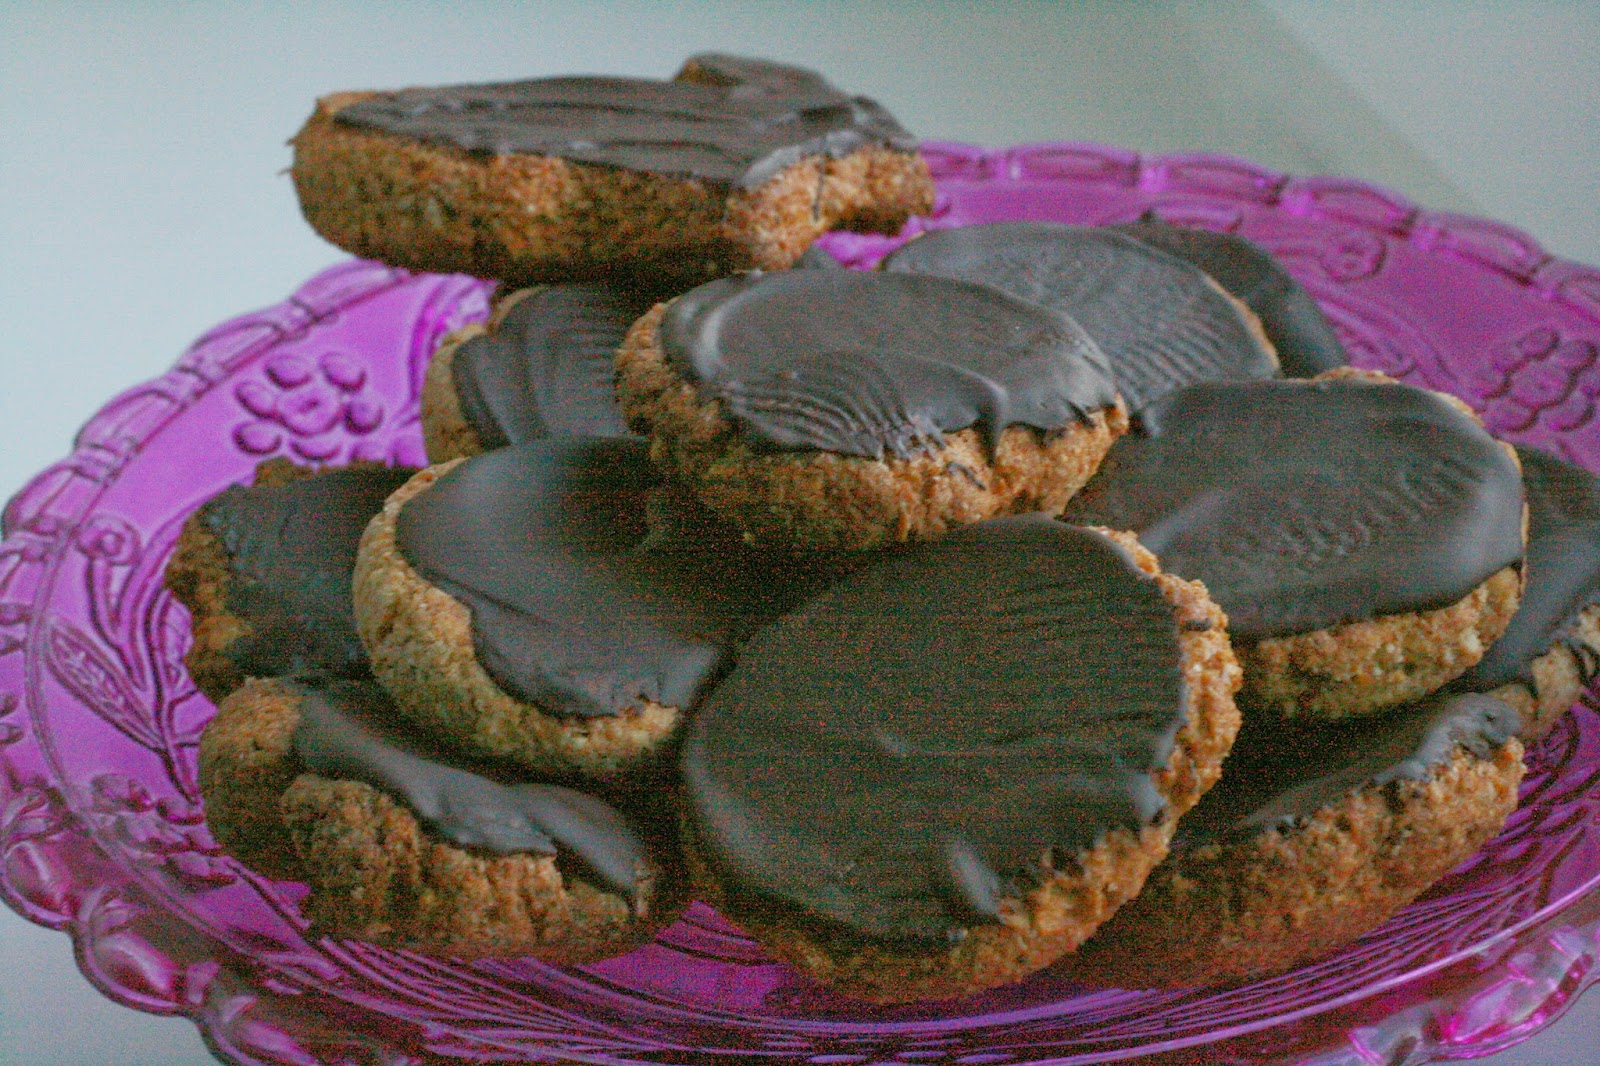 Healthy chocolate digestive biscuits, Teacups & Buttondrops